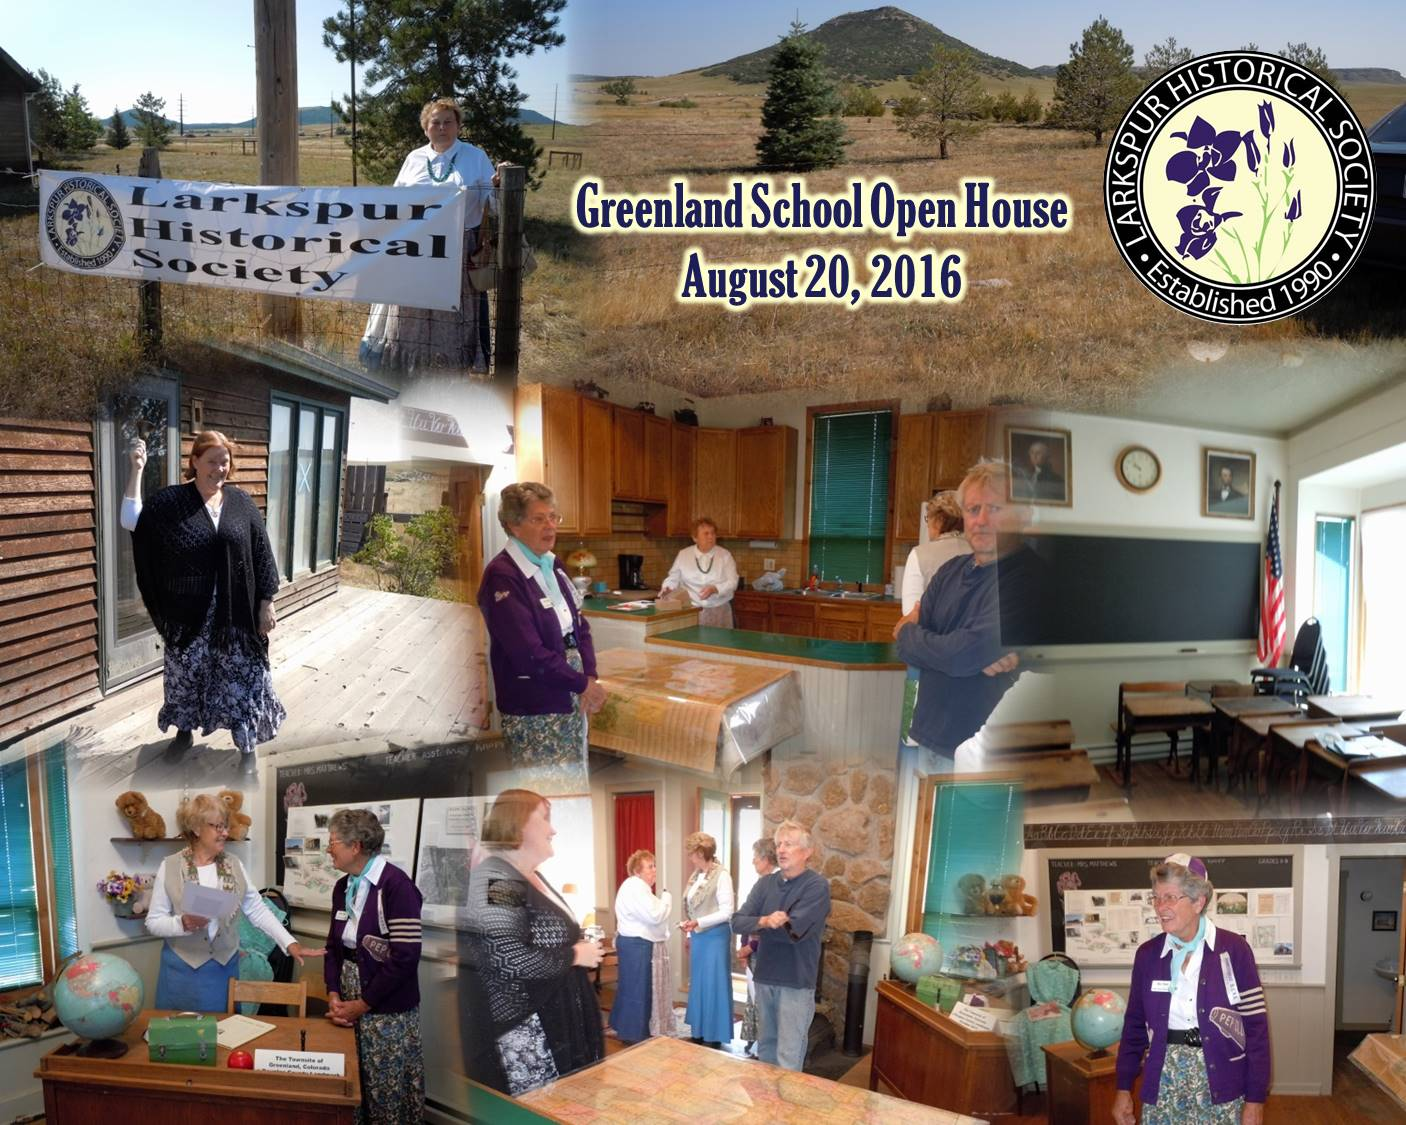 Greenland School Open House August 20, 2016 Larkspur Historical Society